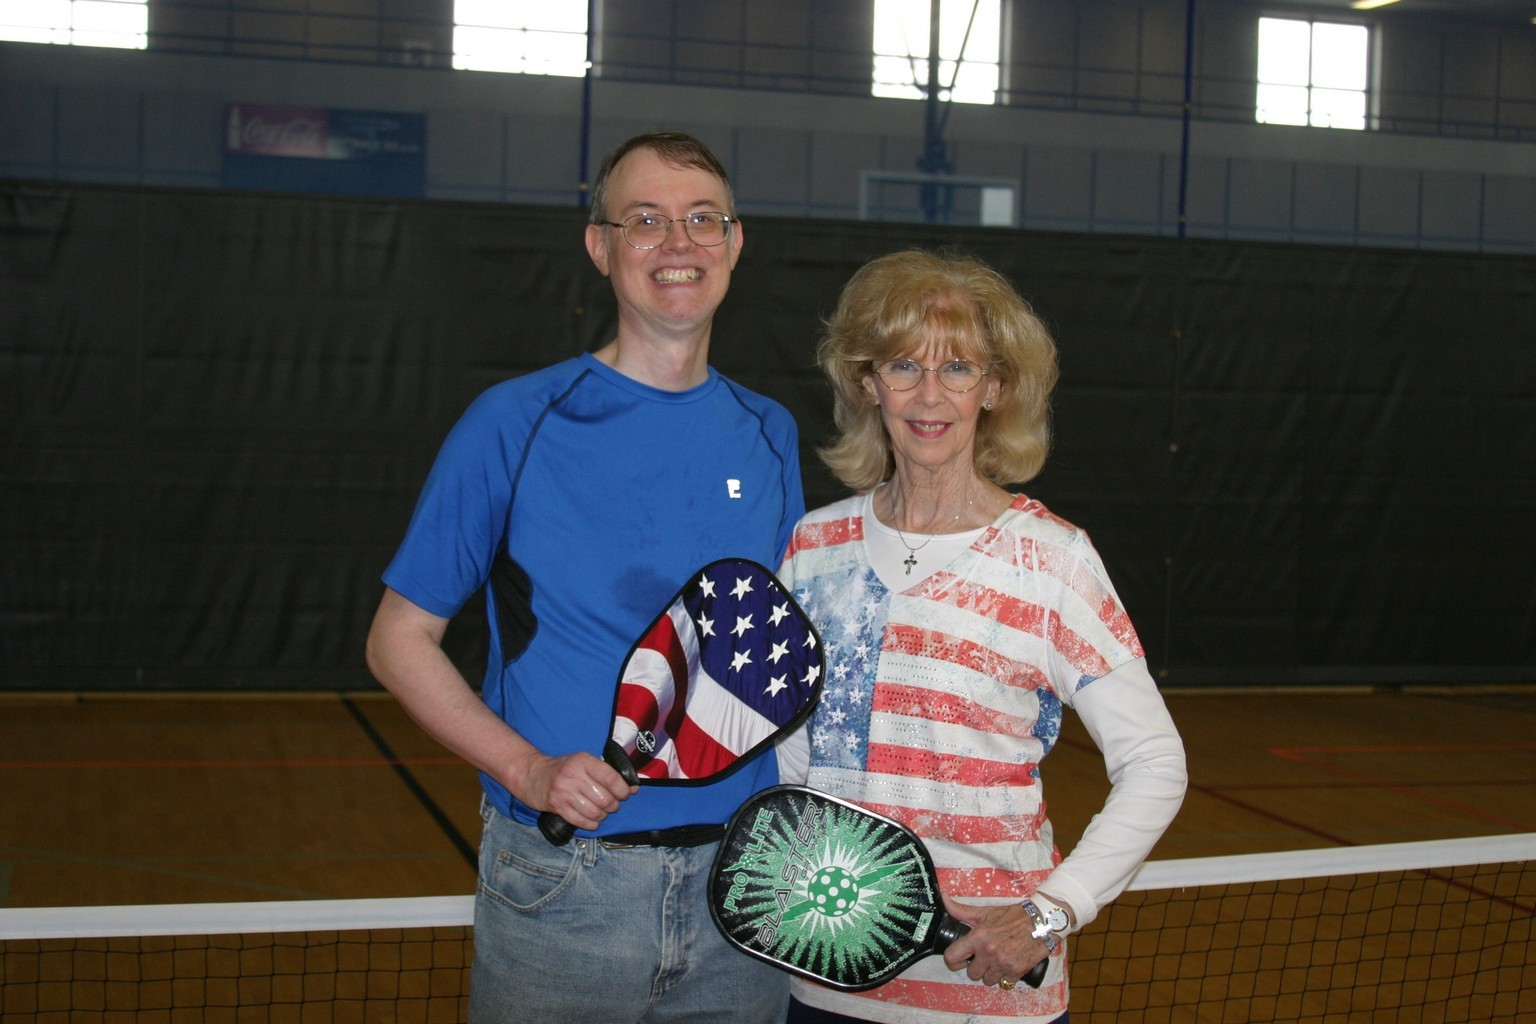 mother and son playing pickleball in trussville alabama, alabama pickleball, trussville pickleball, birmingham pickleball